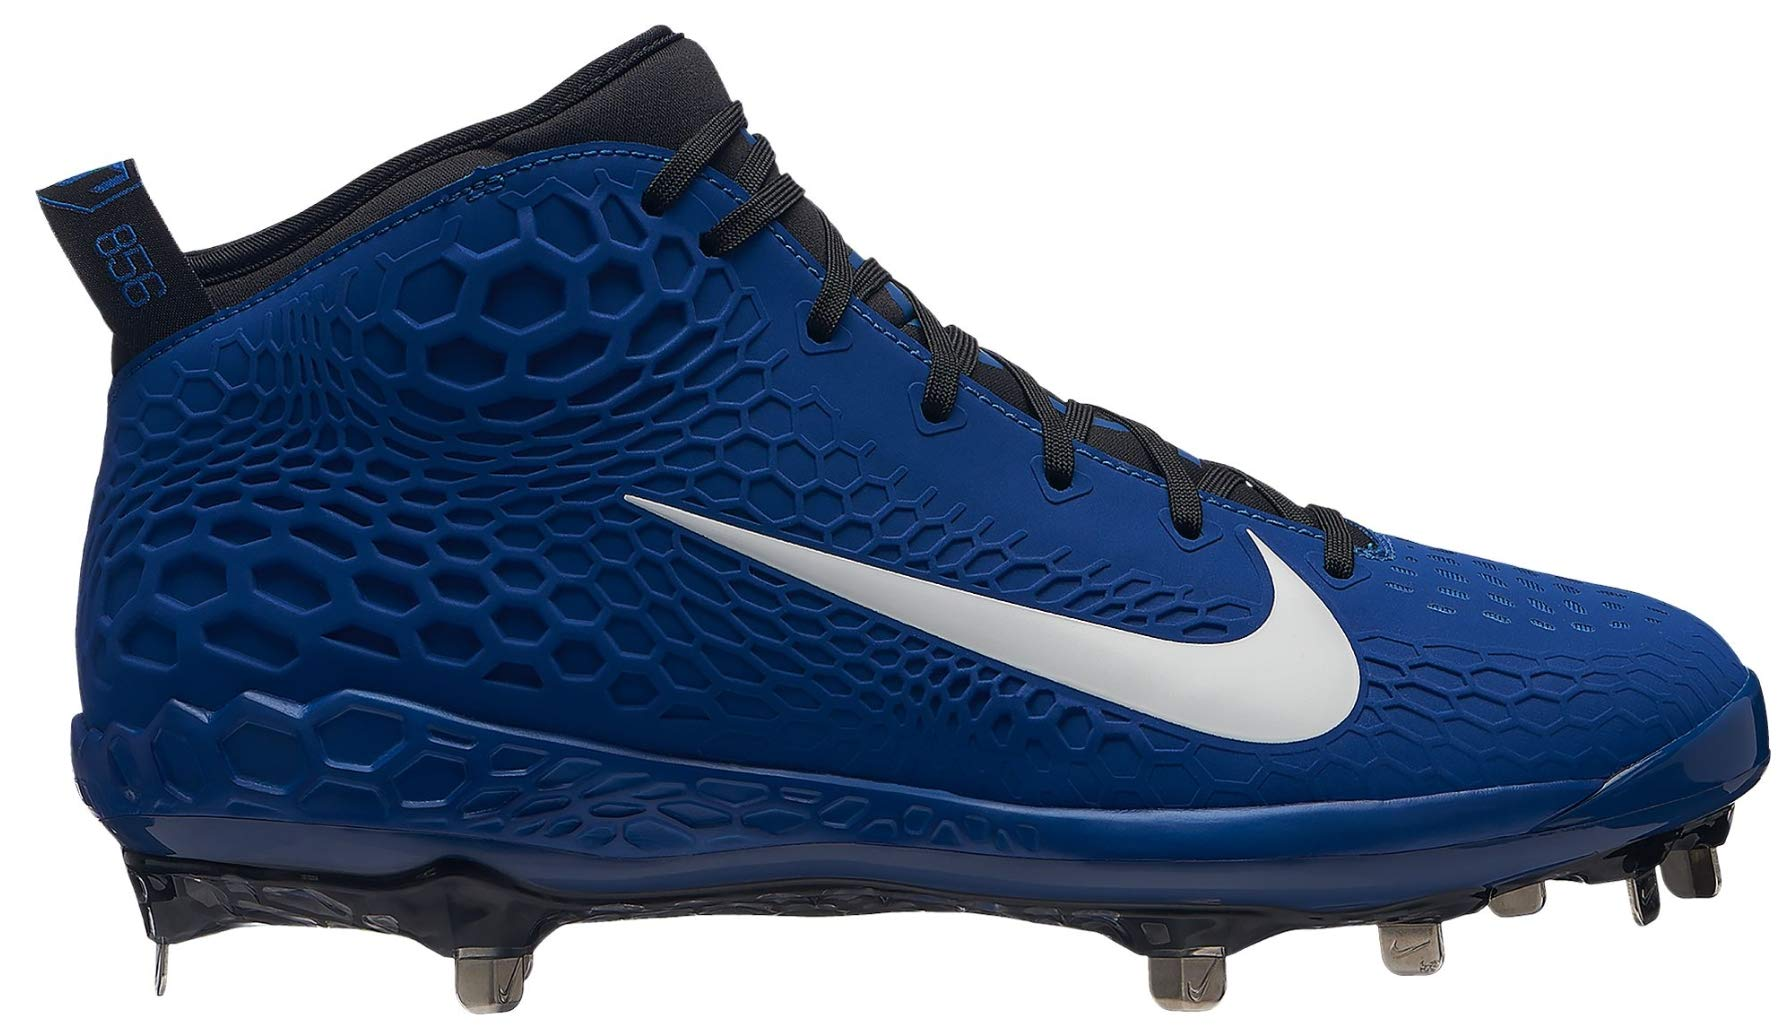 Nike Men's Force Zoom Trout 5 Metal Baseball Cleats (9, Blue/White) by Nike